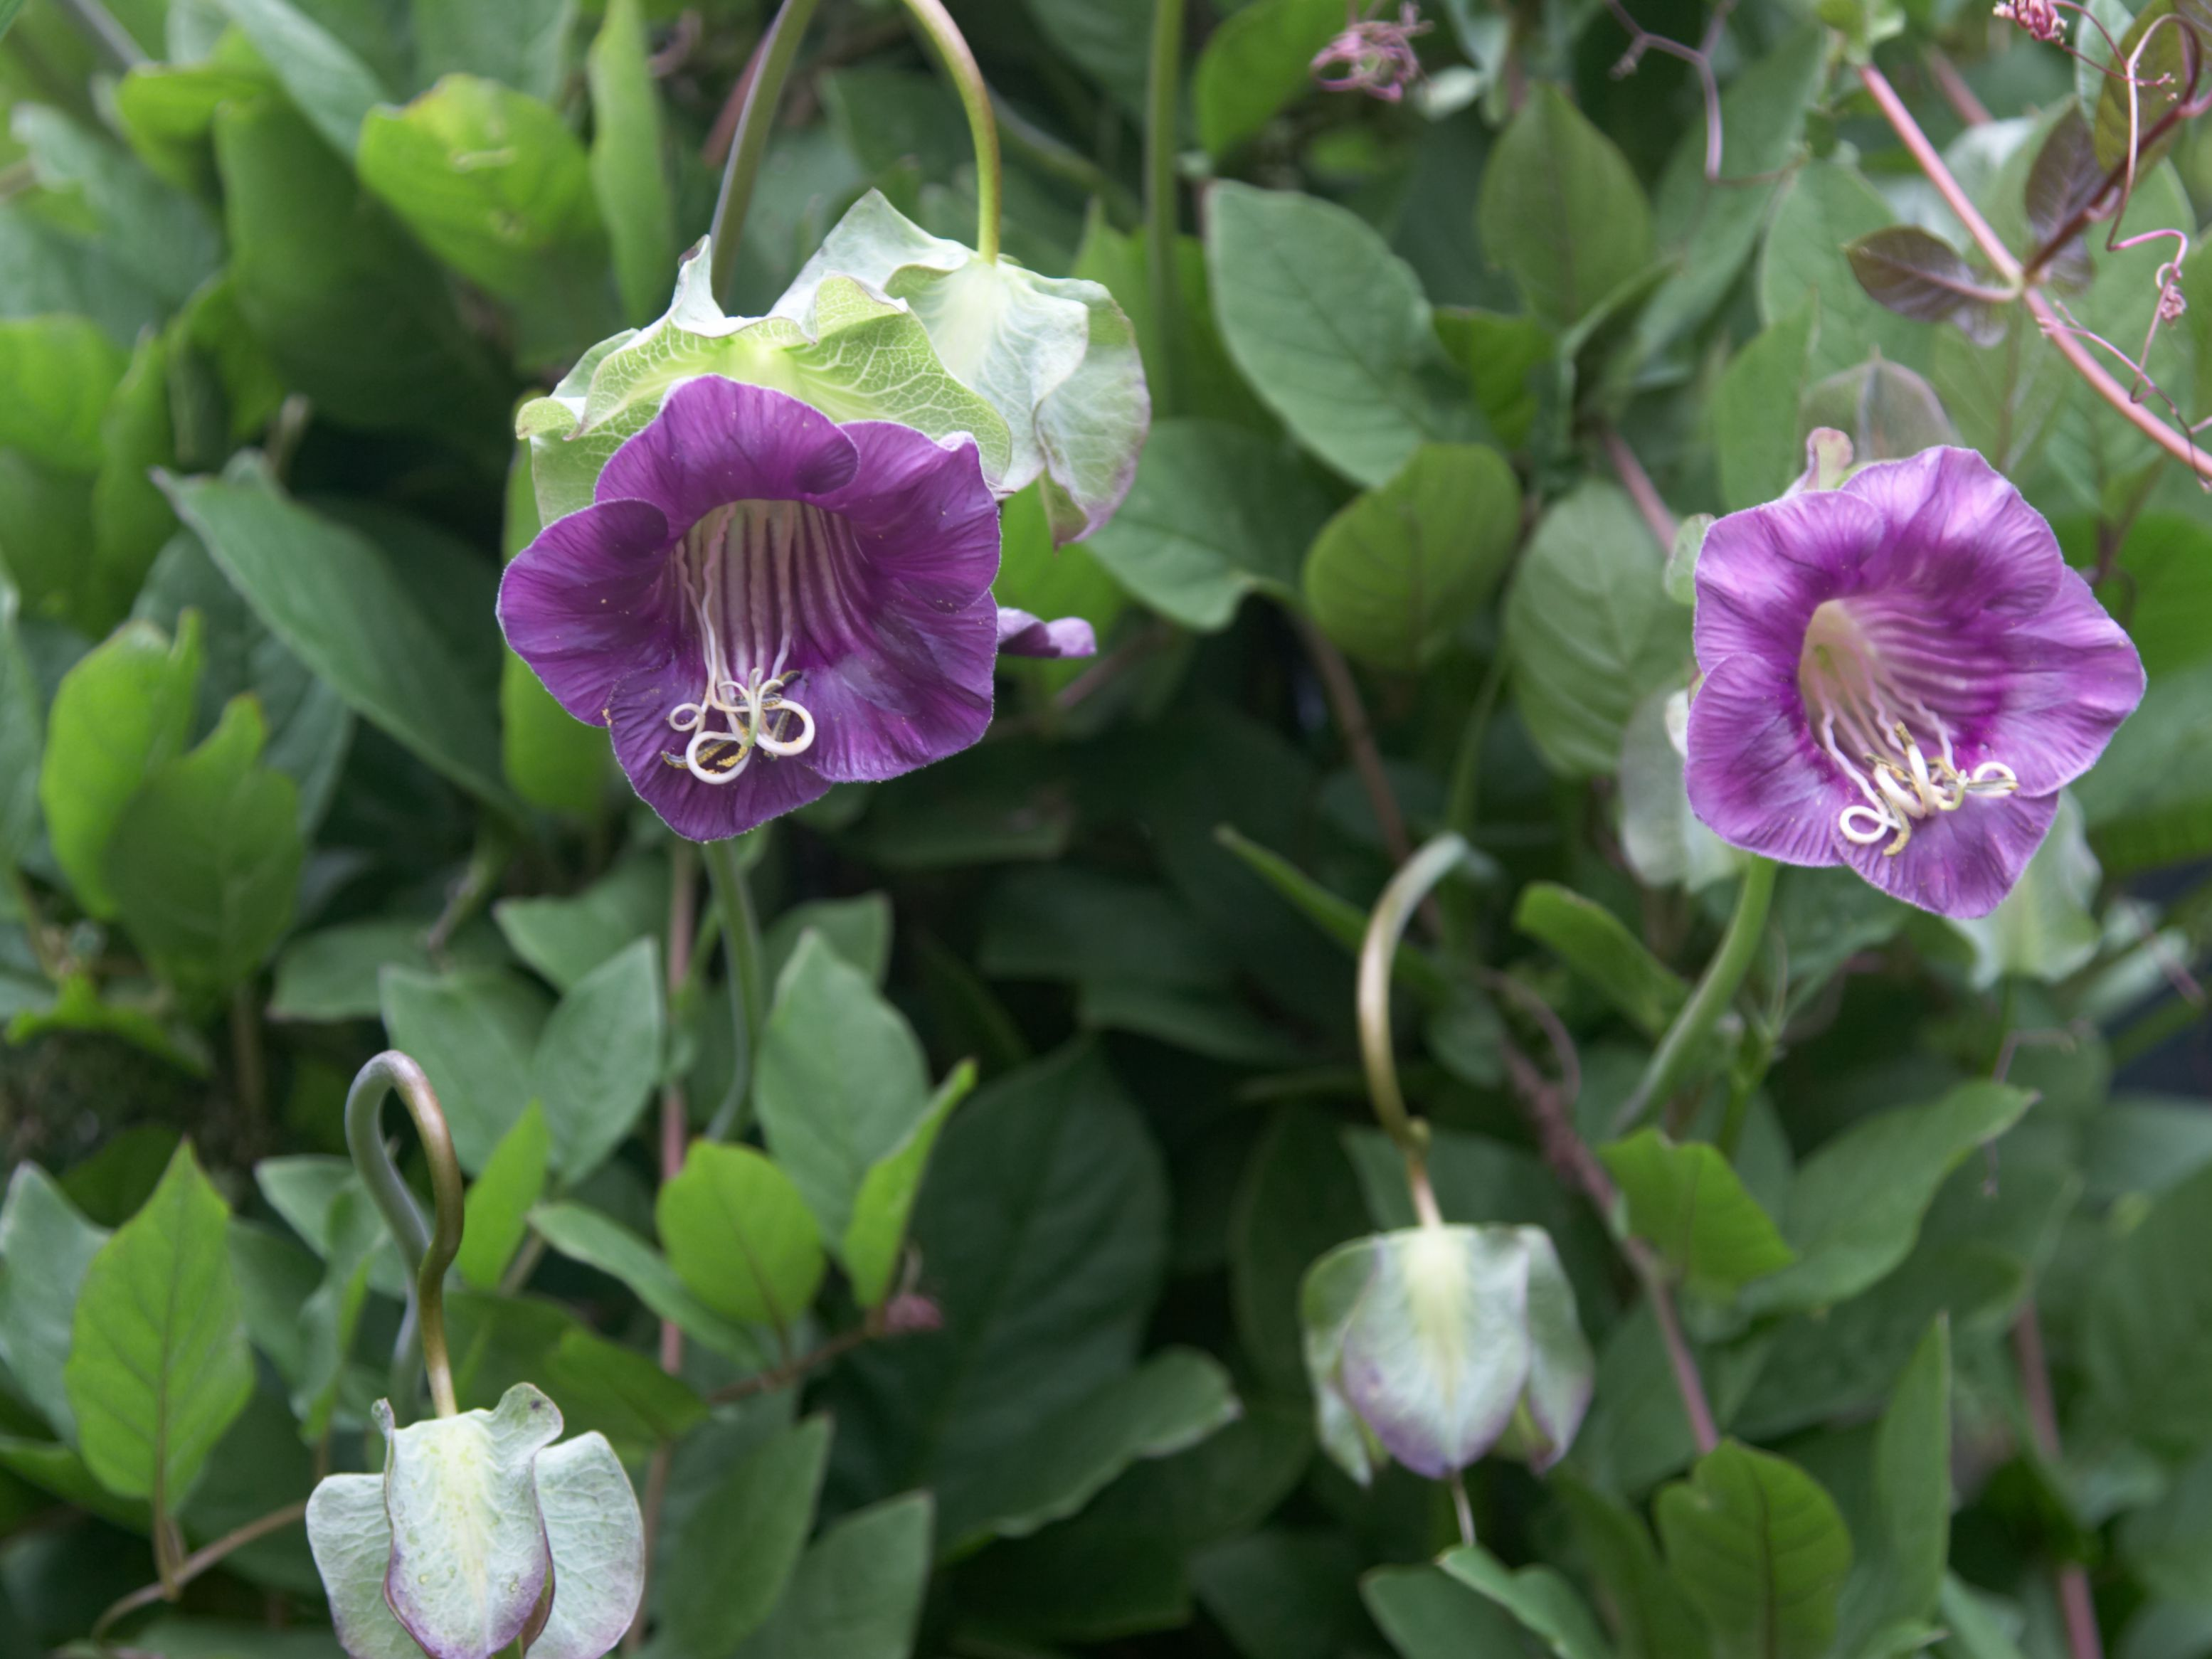 COBAEA CATHEDRAL BELLS Cup /& Saucer Vine Fast Growing Climbing Vine-10 Seeds